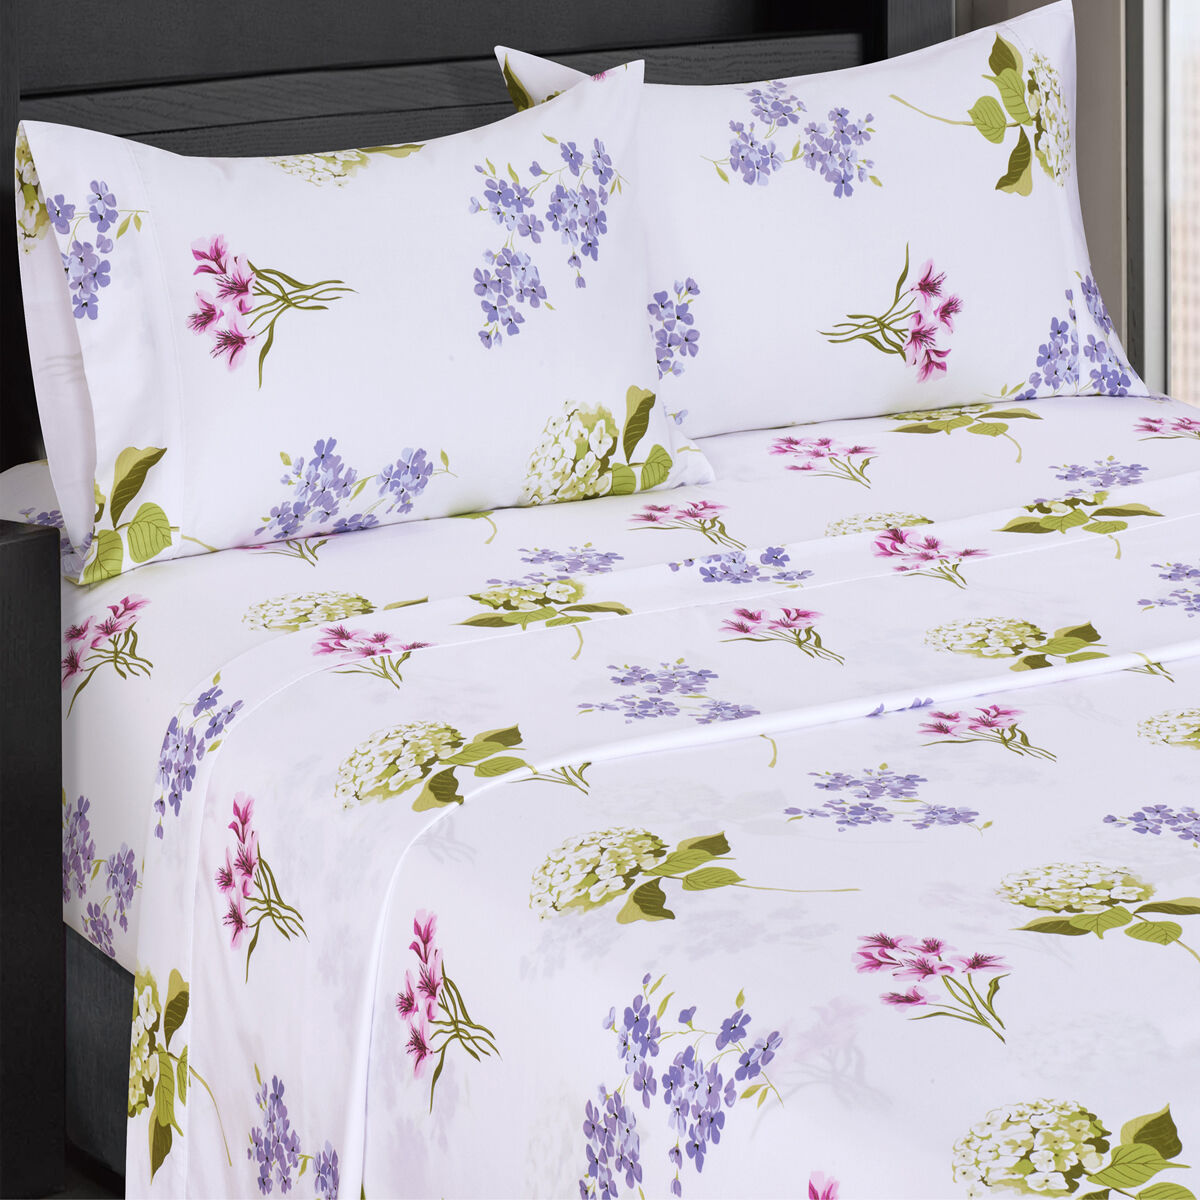 Blossom 300 Thread Count Floral Sheets 100% Cotton Flower Print Bed Sheet Sets